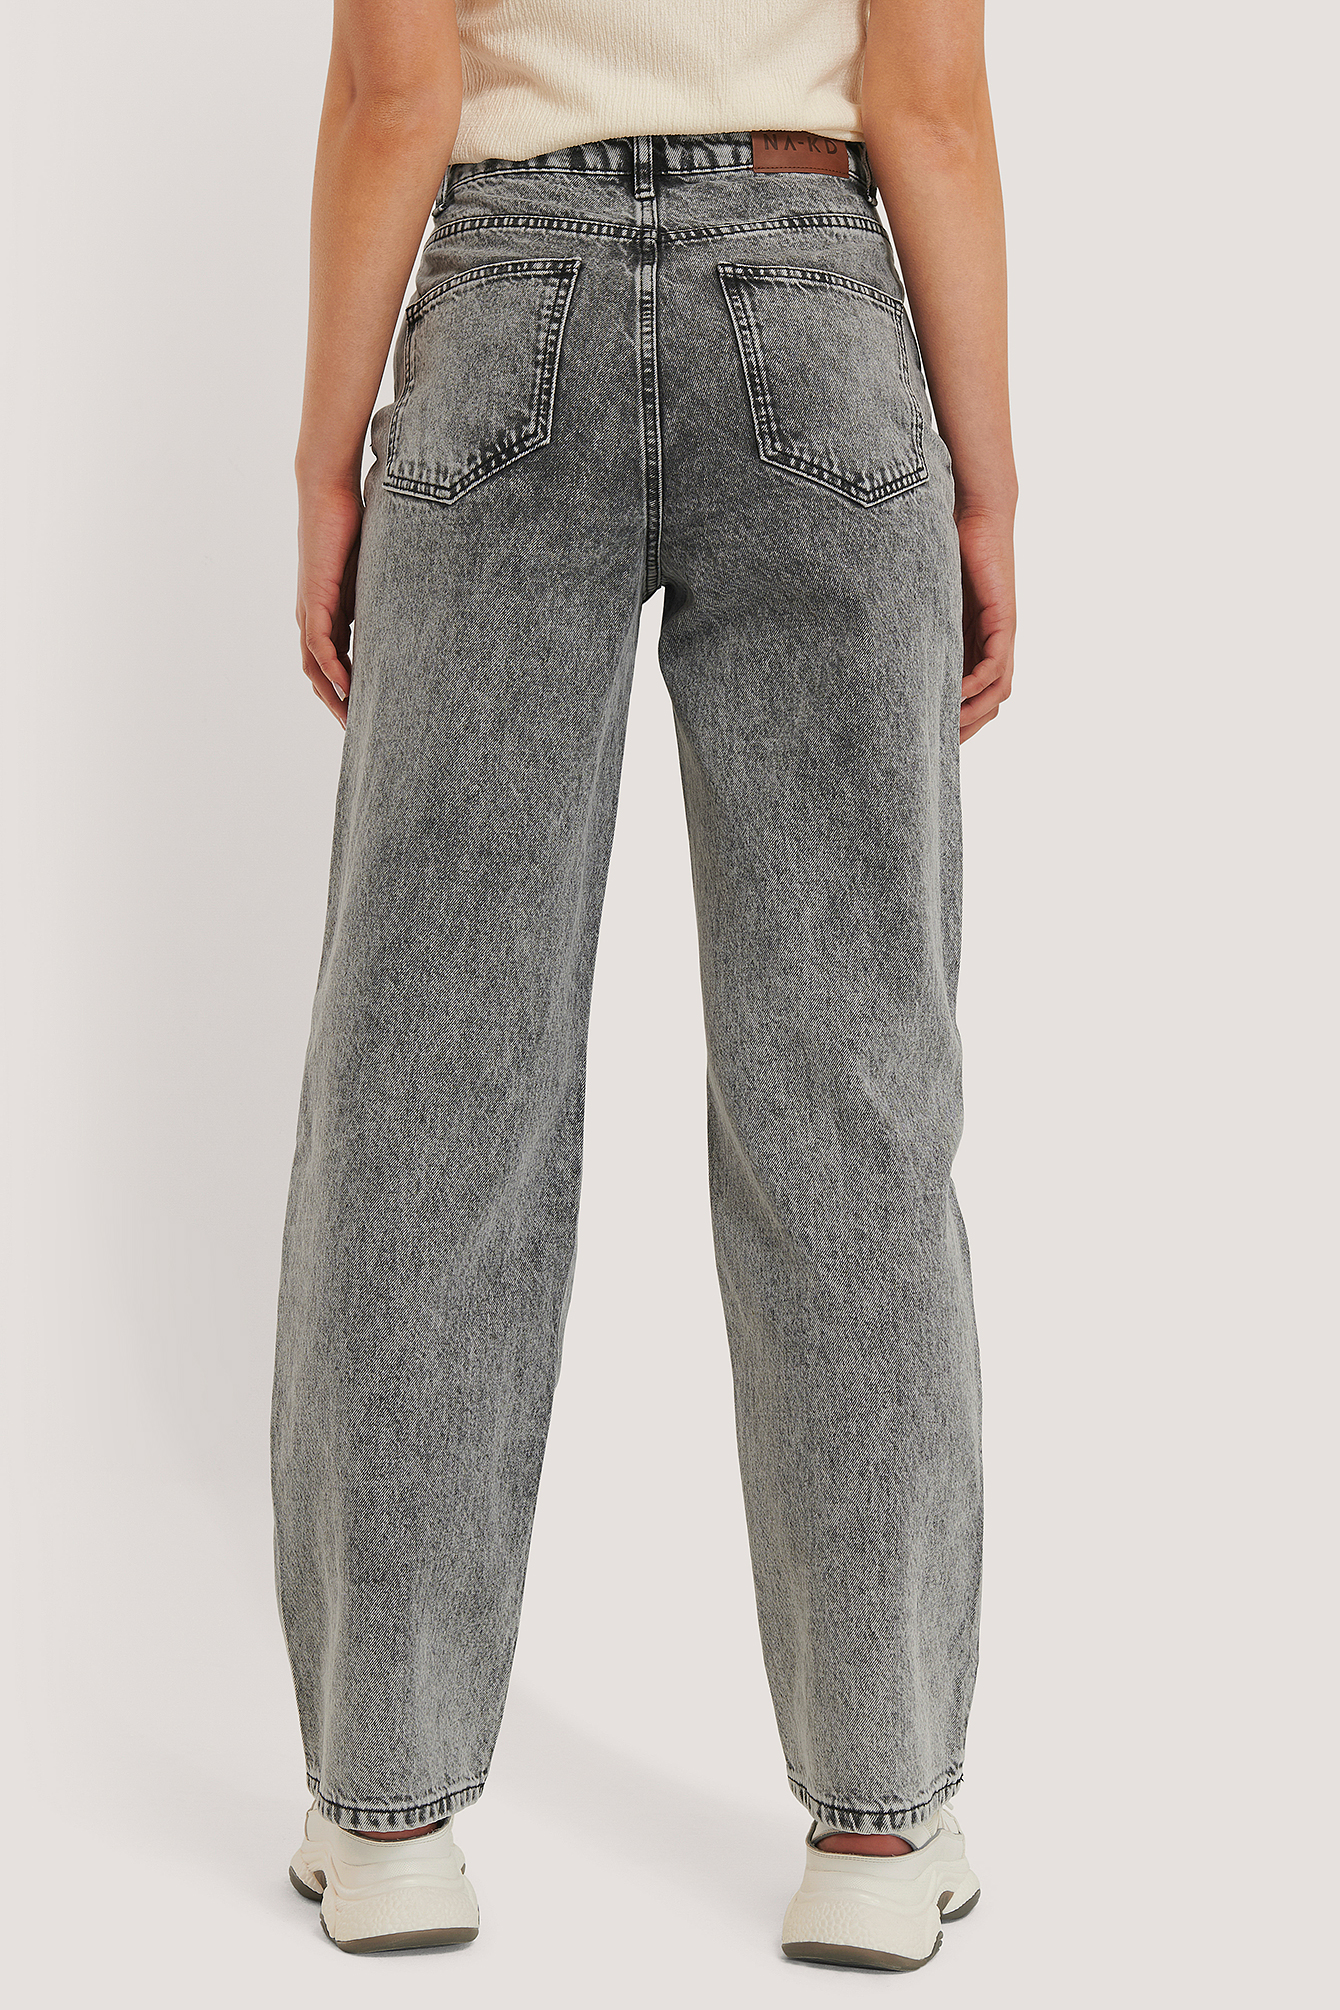 Grey Wide Leg Denim